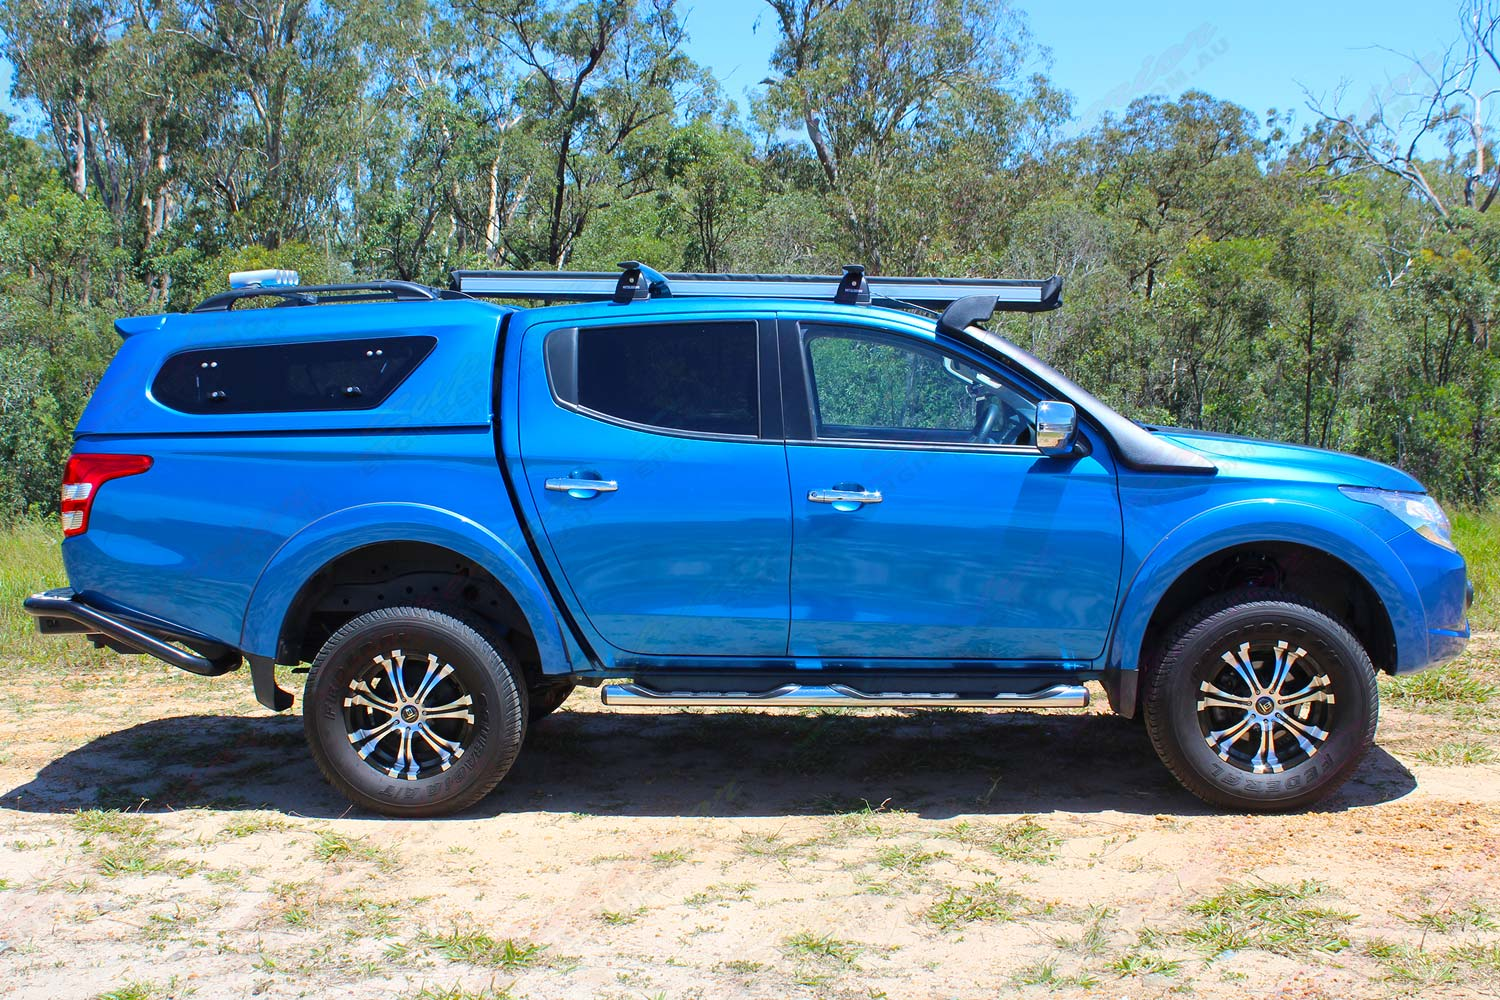 Right side view of the MQ Mitsubishi Triton (dual cab) fitted out with a 40mm Superior Nitro Gas lift kit